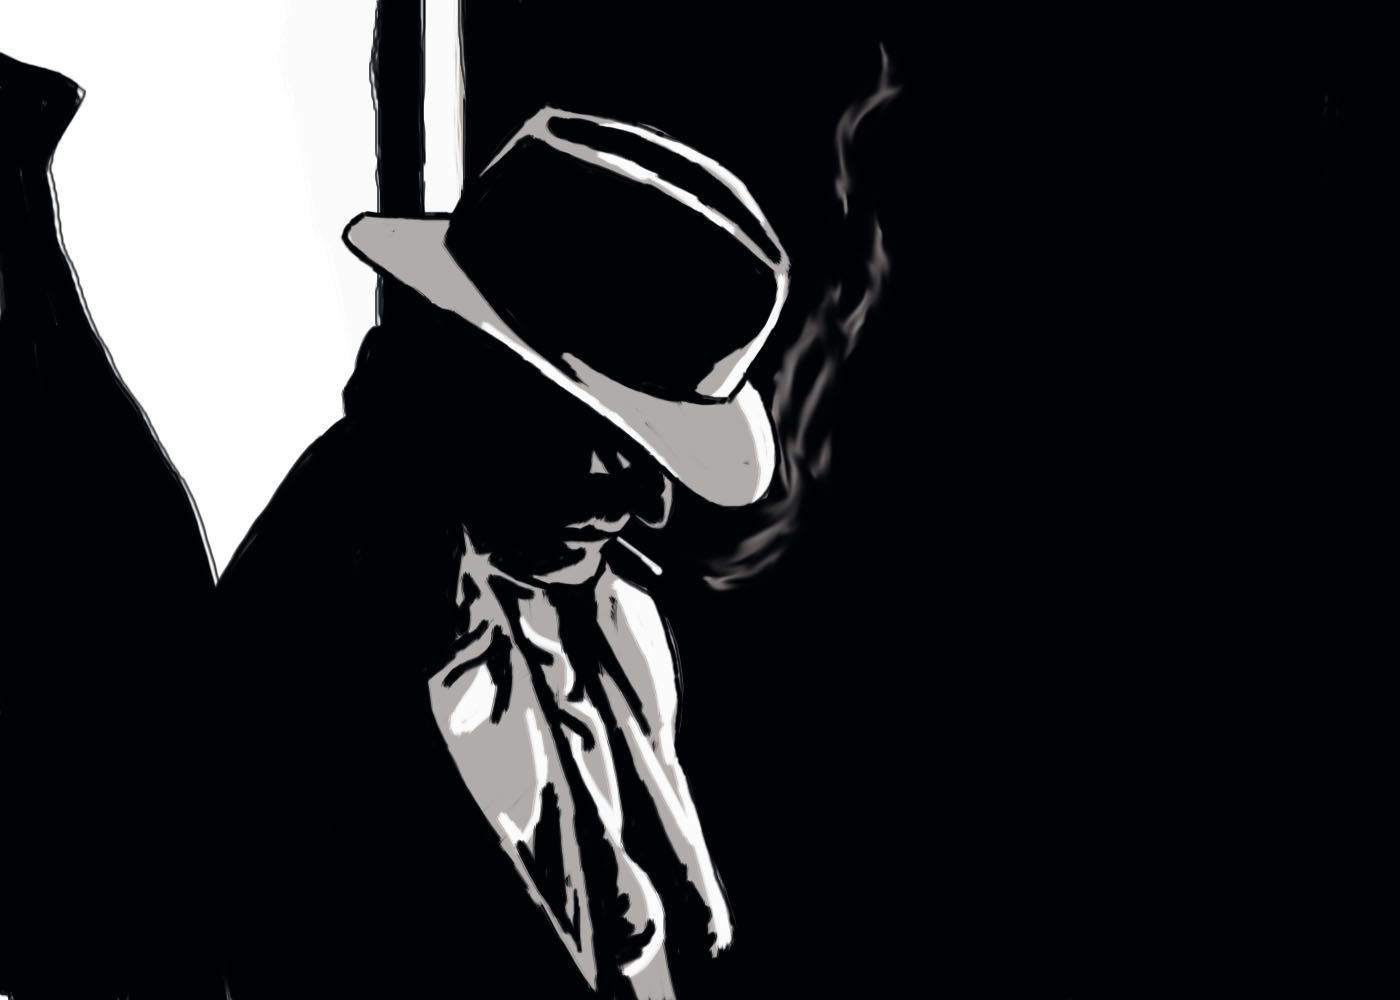 A graphic novel inspired by noir film directors